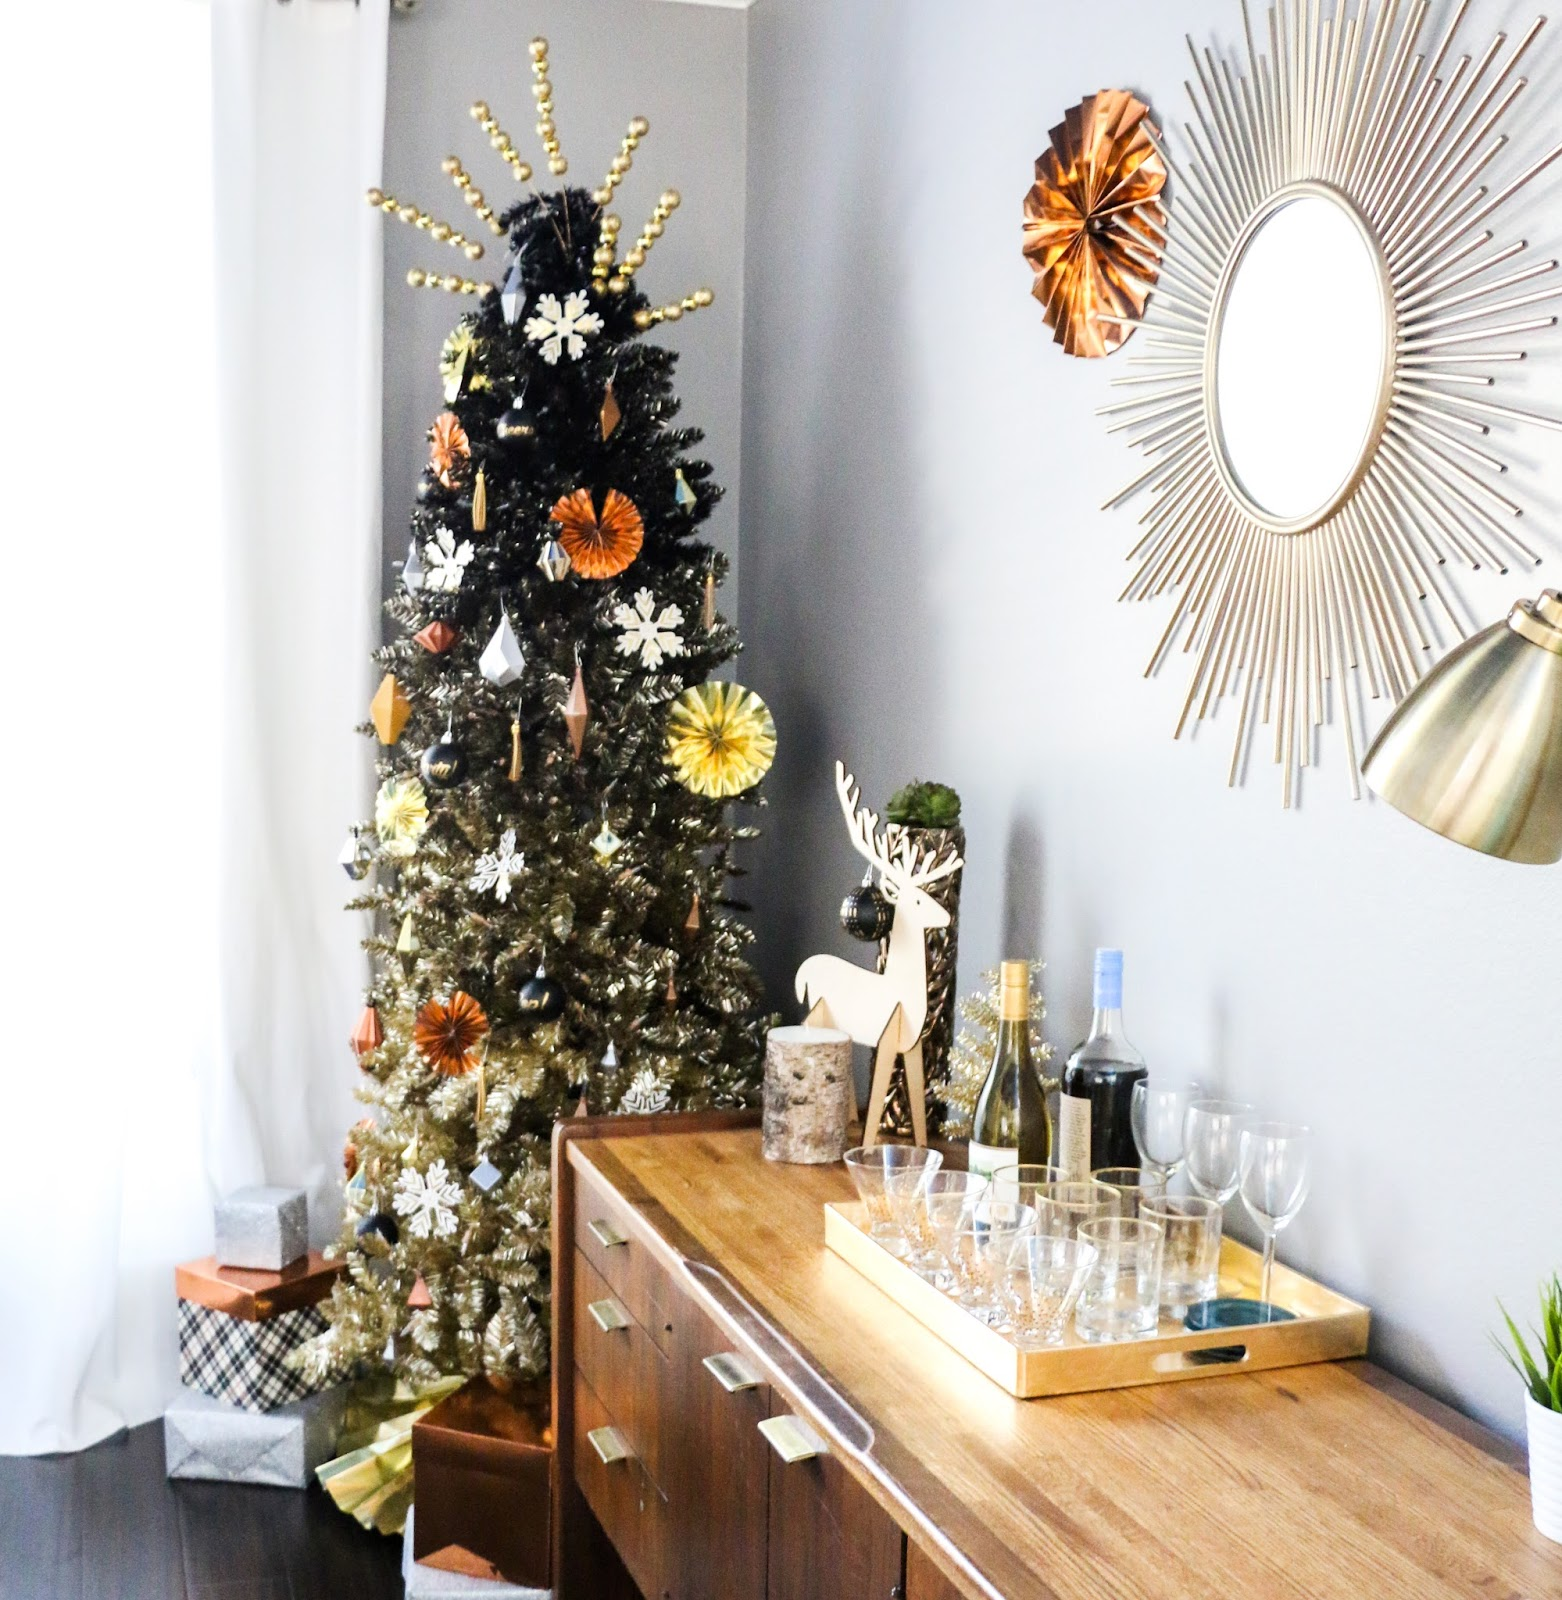 the mix of geometric ornaments and paper fans in a variety of metal colors is definitely not traditional christmas but still exudes a holiday party vibe